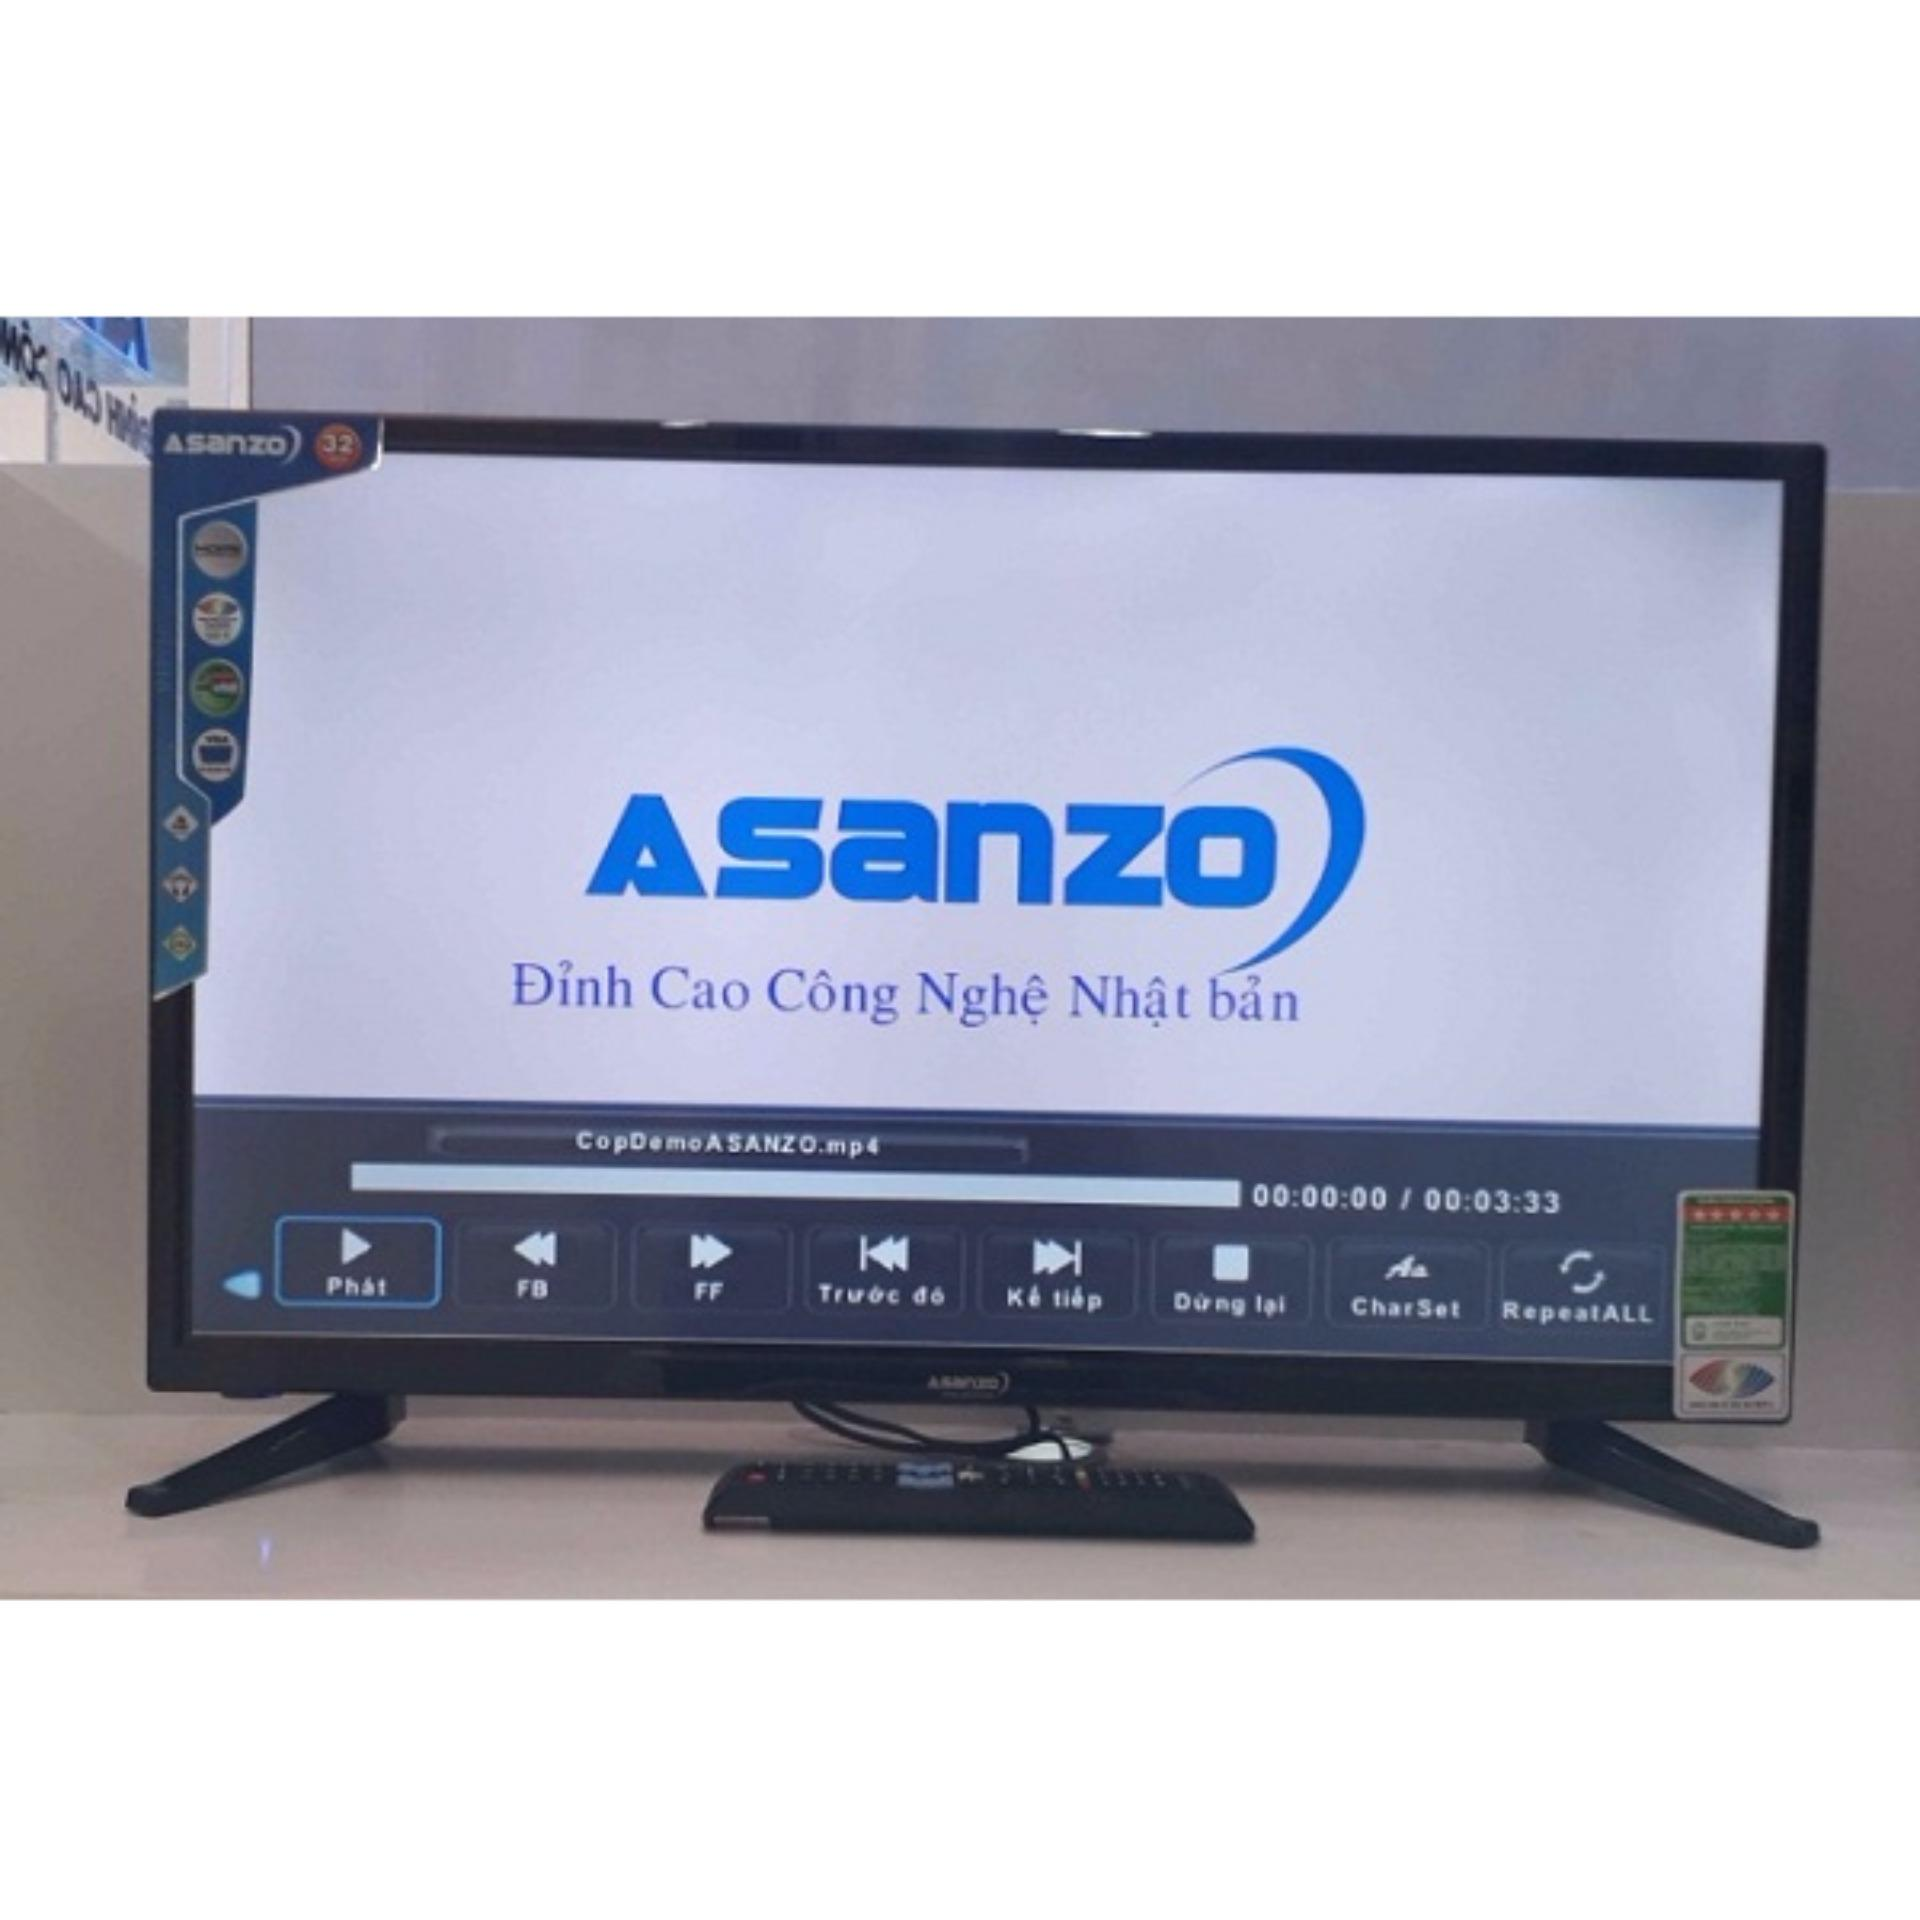 Tivi LED Asanzo 32 inch HD - Model ES32T800 (Đen)